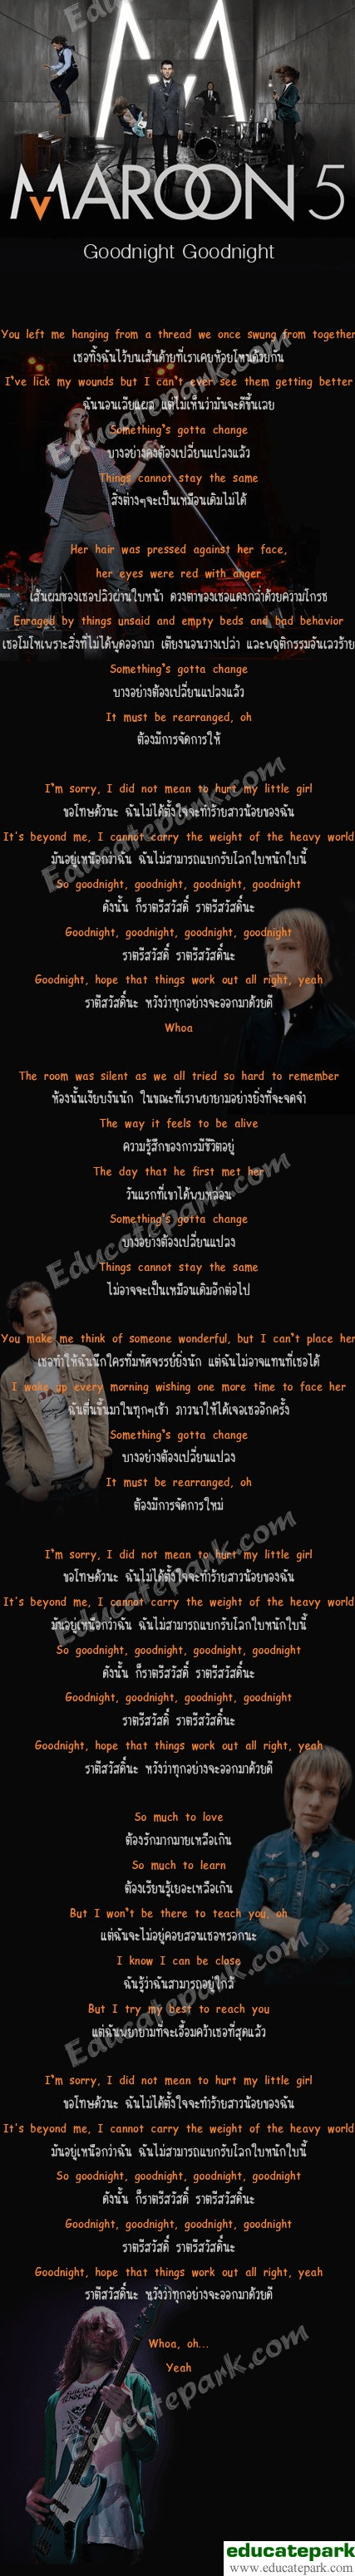 แปลเพลง Goodnight Goodnight - Maroon 5